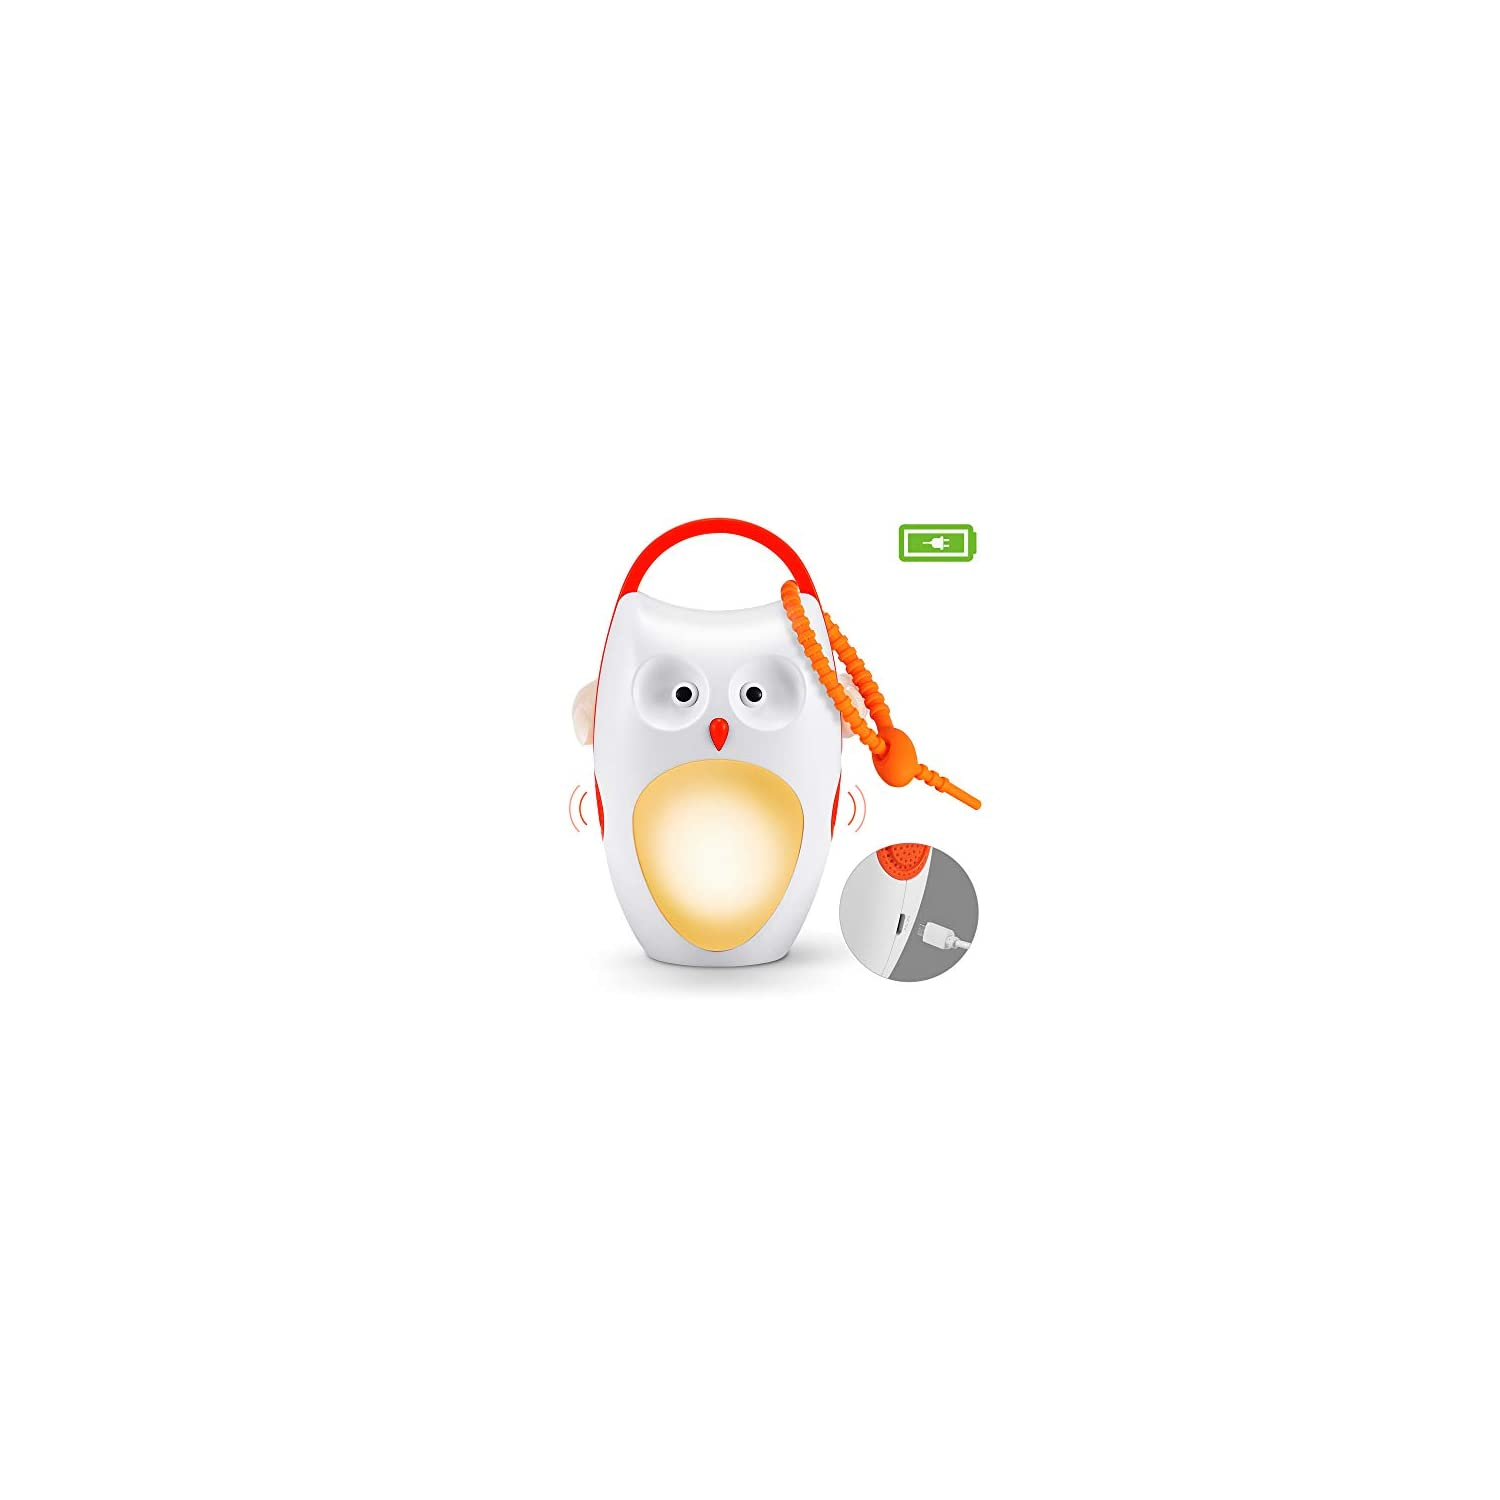 Baby Sleep Soother Shusher Sound Machines, Baby Gift, Rechargeable Portable White Noise Machine with Night Light, 8 Soothing Sounds and 3 Timers for Traveling, Sleeping, Baby Carriage (owl)